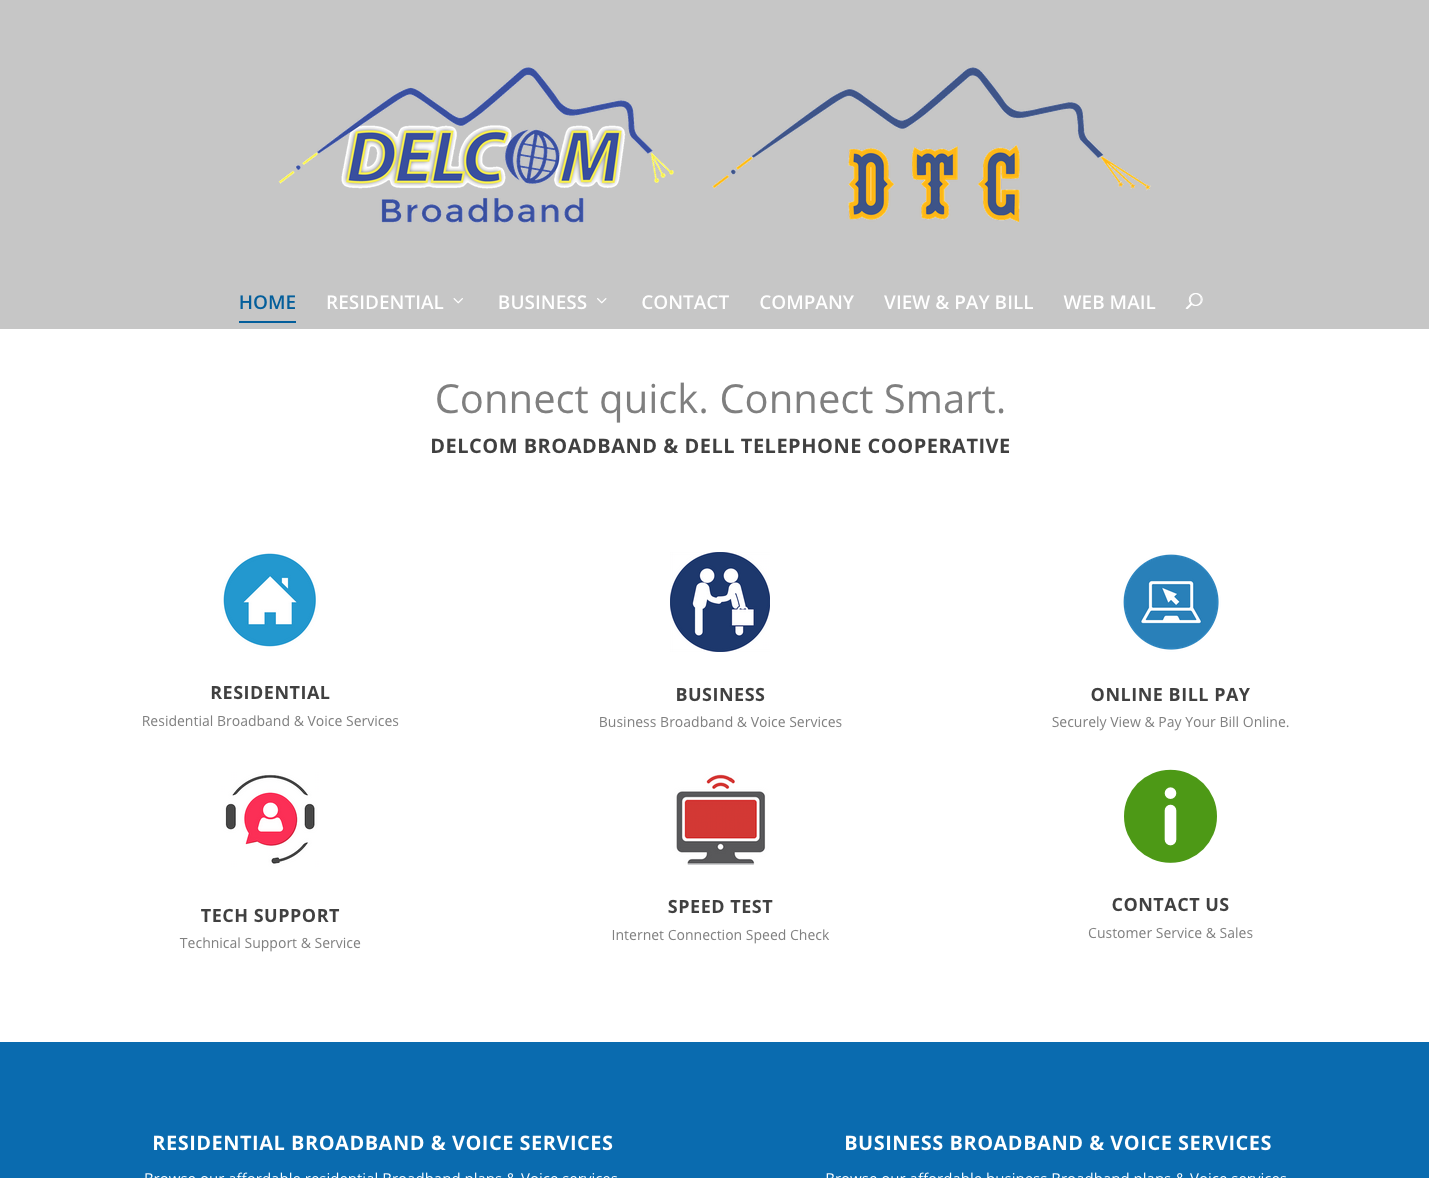 Delcom - Dell Telephone